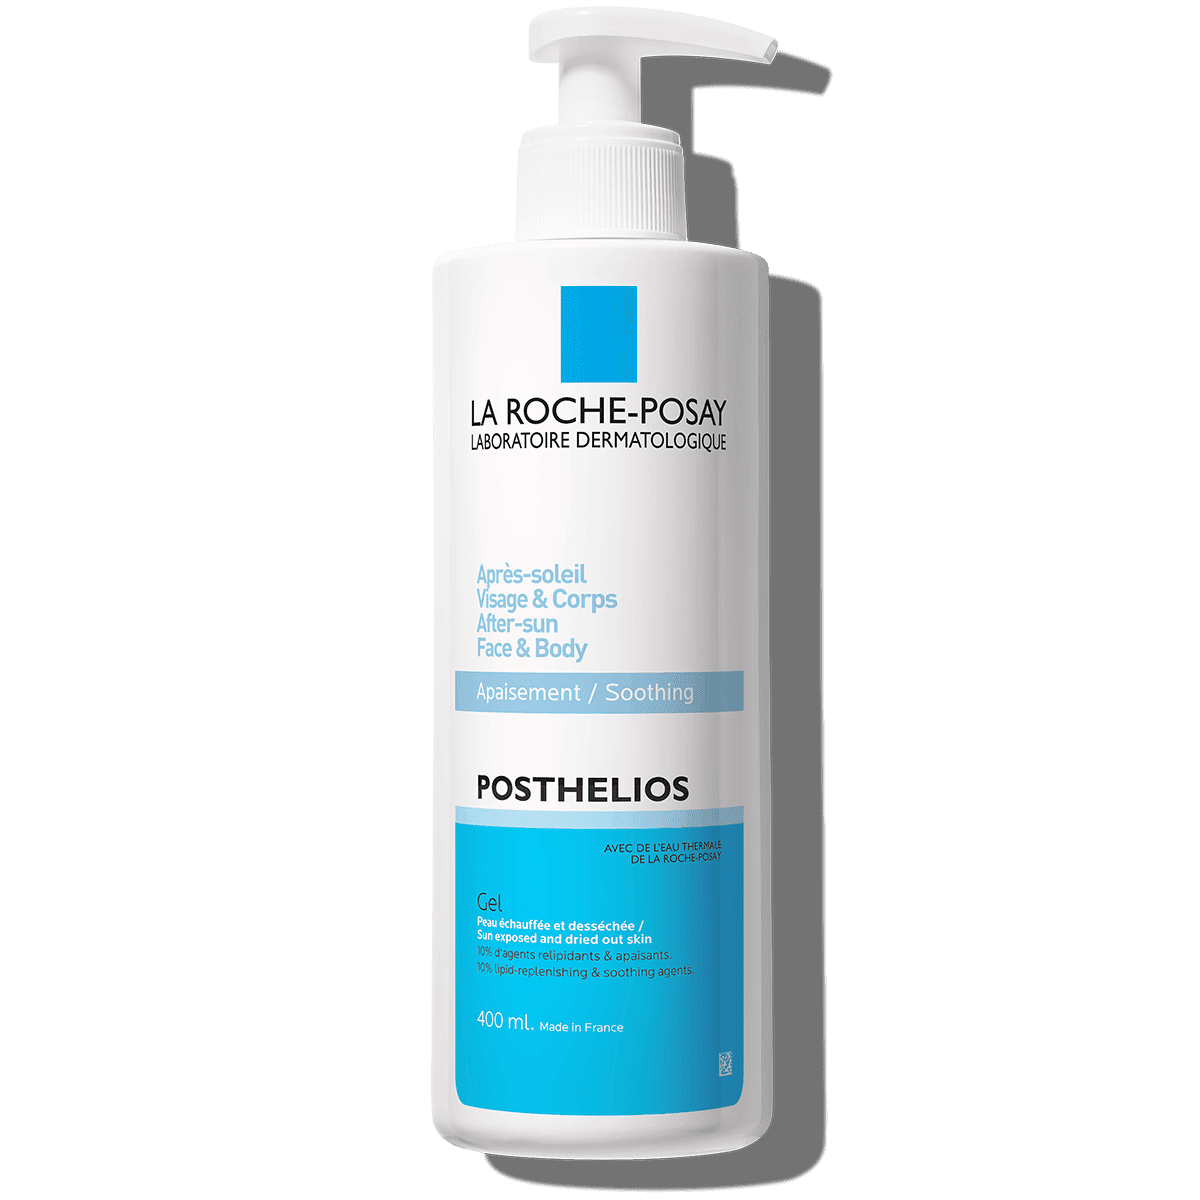 La Roche Posay ProductPage After Sun Posthelios Melt In Gel 400ml 3337